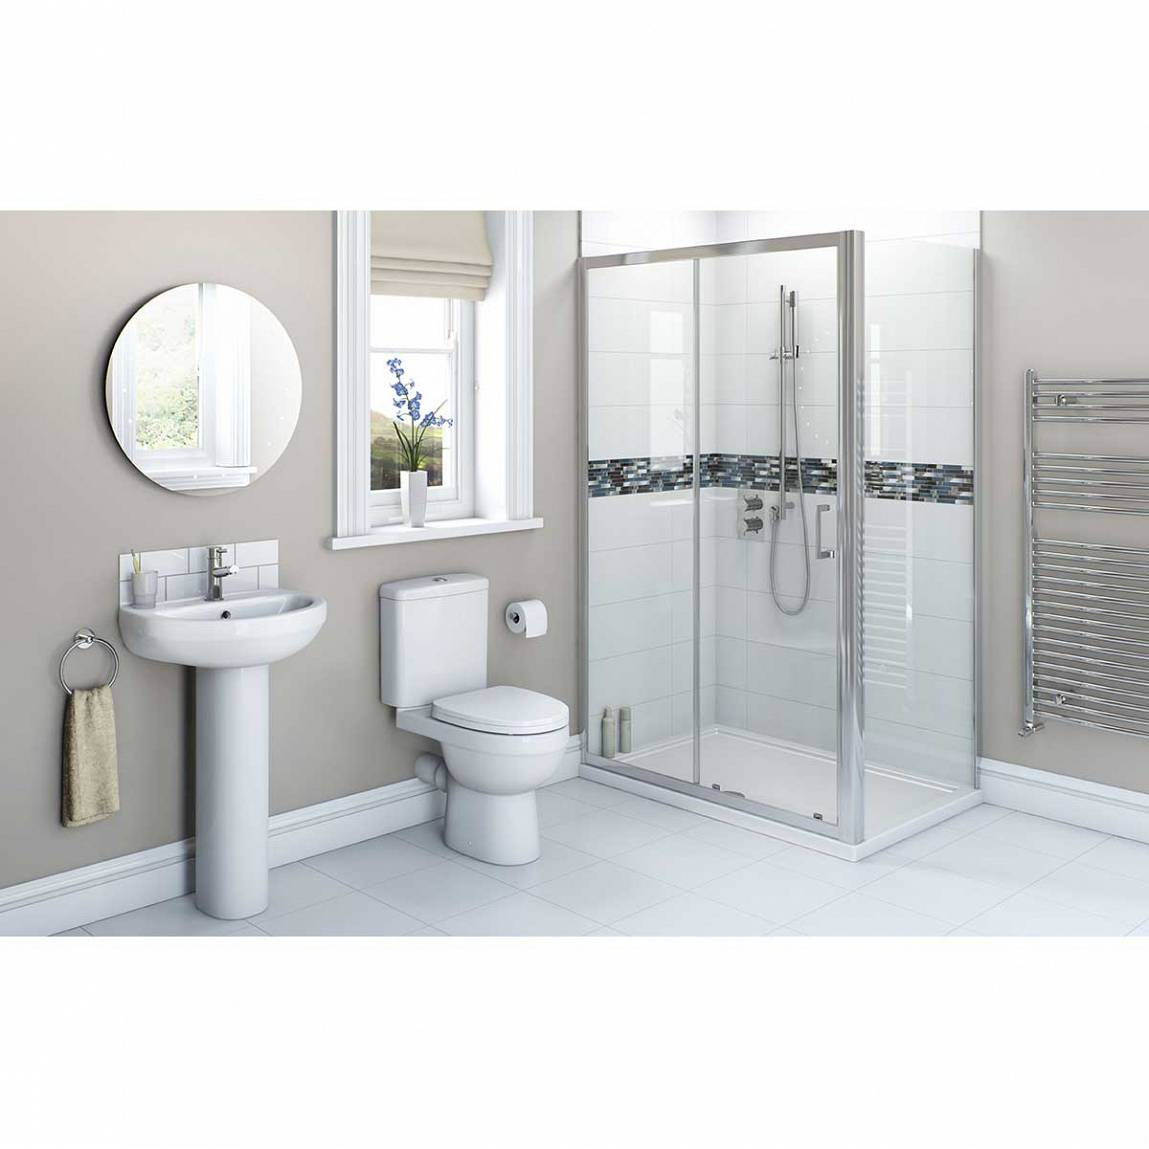 Image of Energy Bathroom set with 1000x800 Sliding Enclosure & Tray